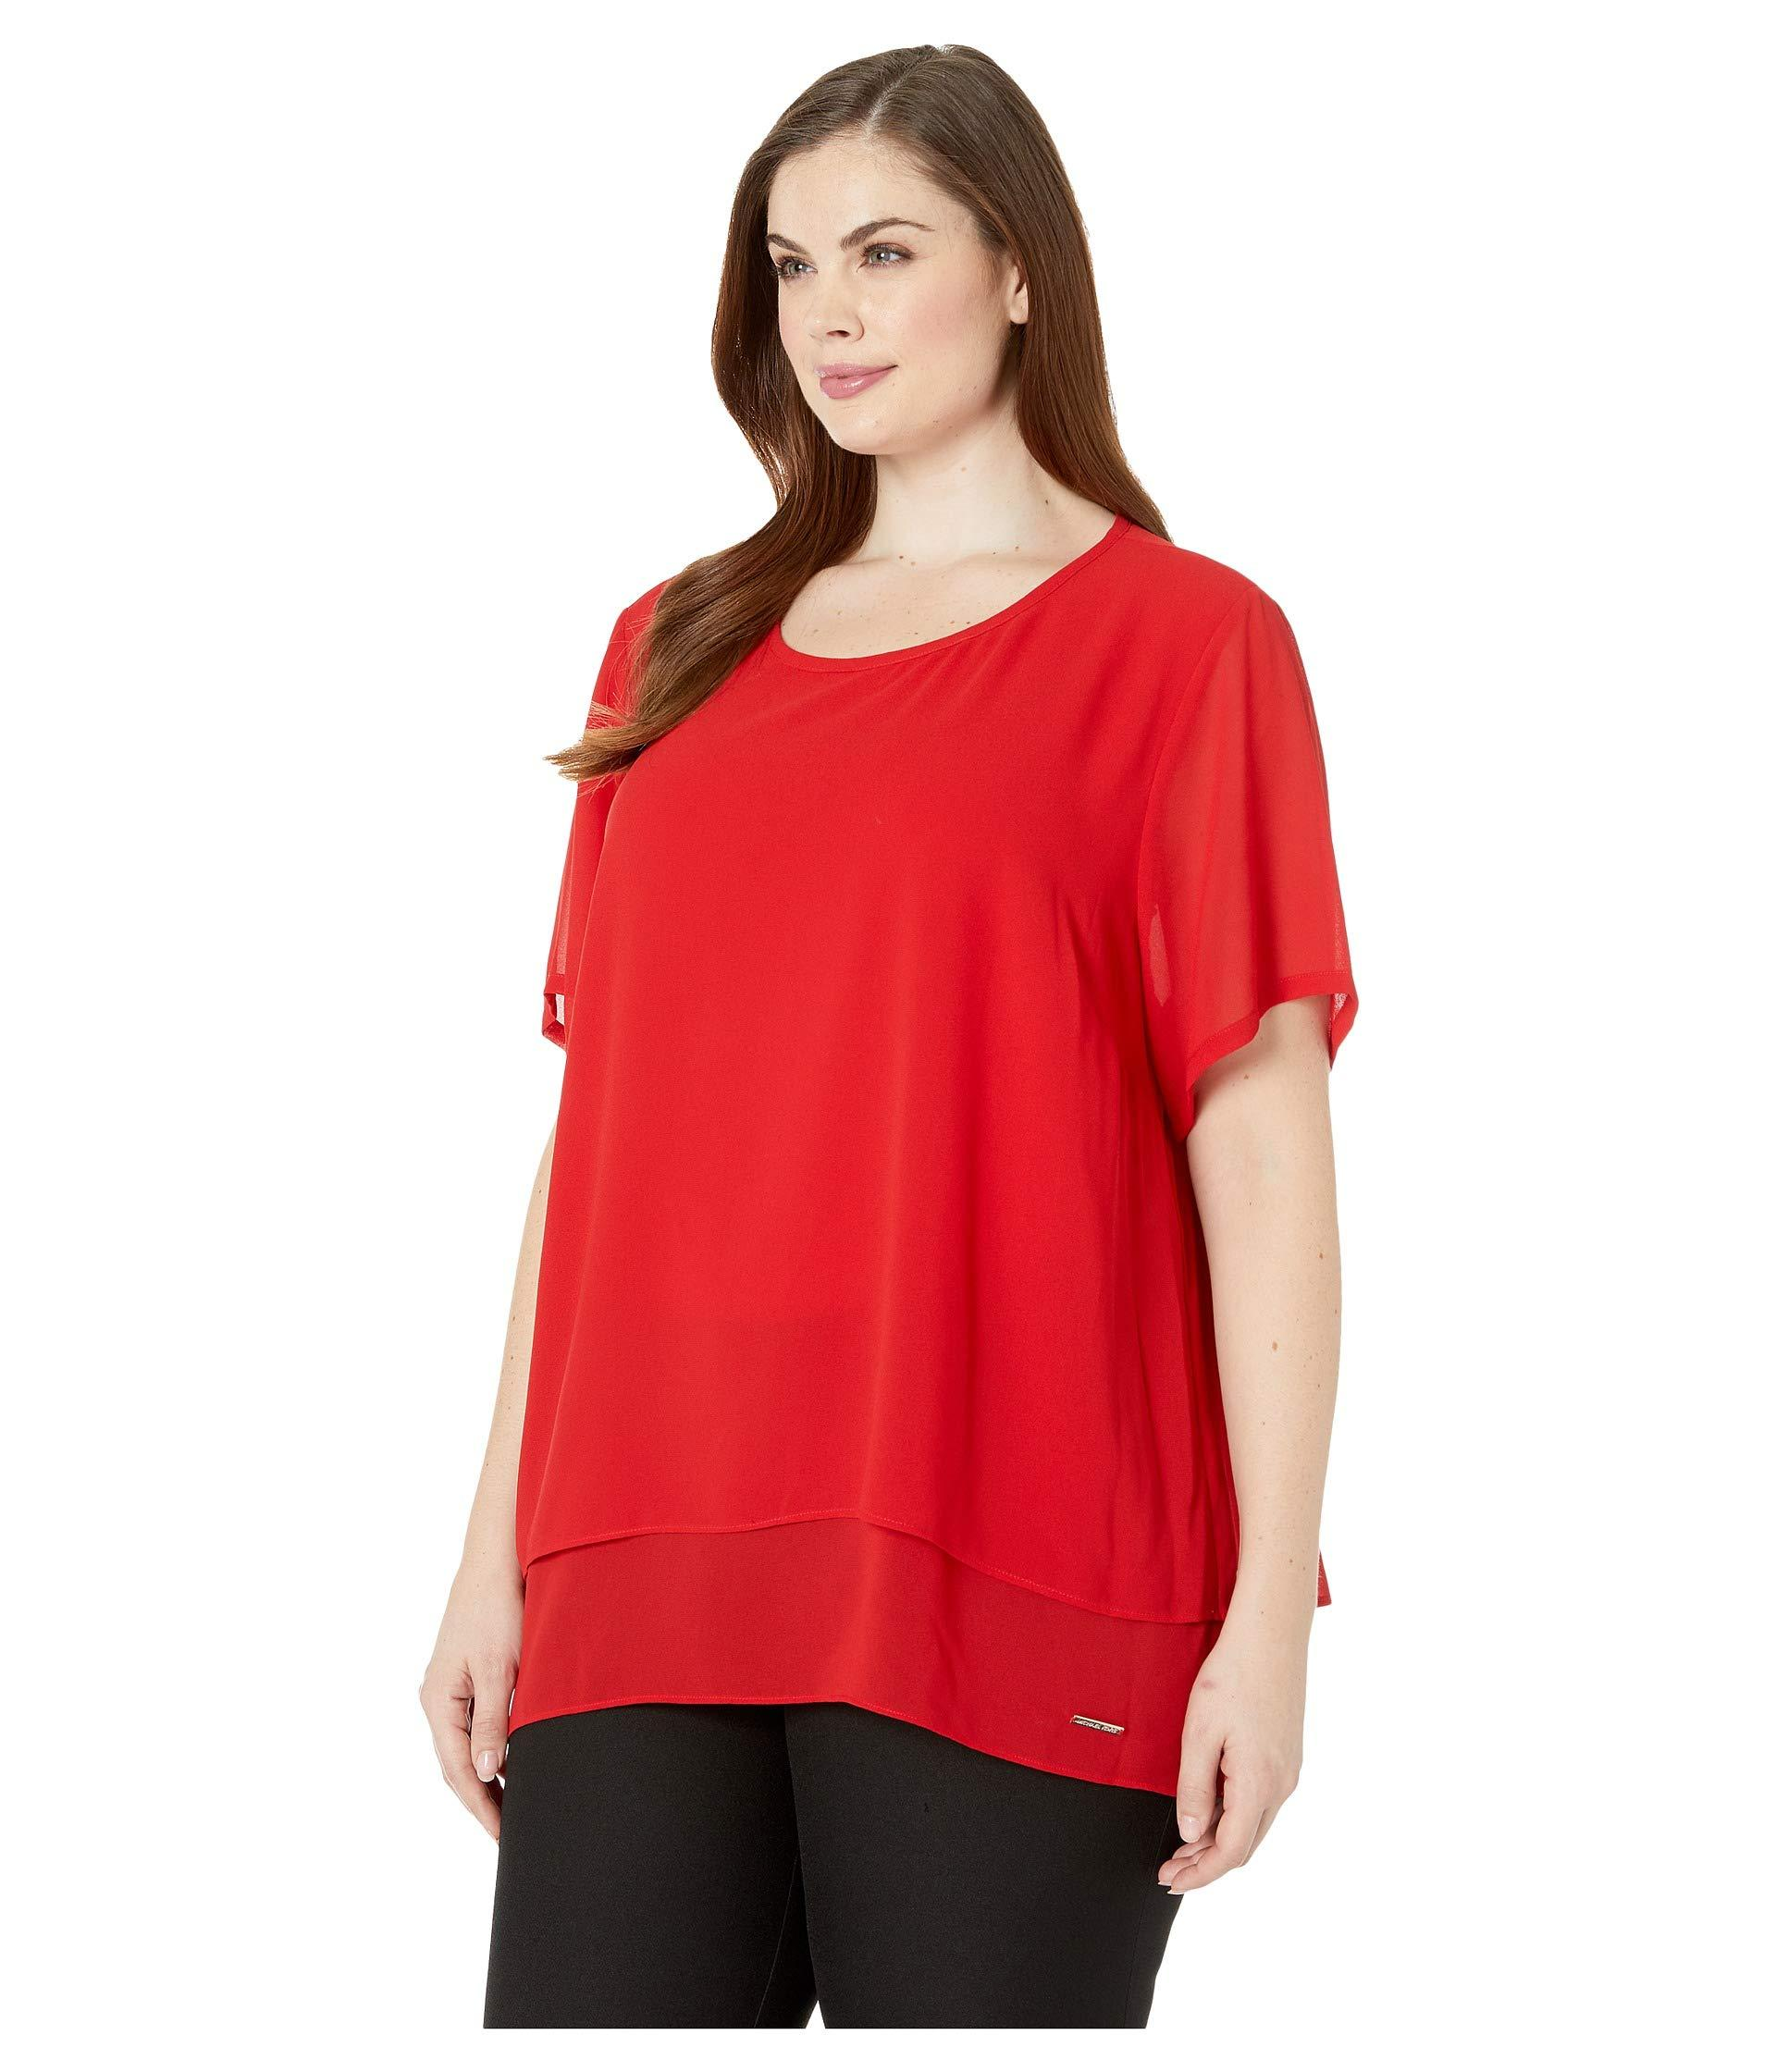 855cdf05eaf0e Lyst - MICHAEL Michael Kors Plus Size Back Cut Out Short Sleeve Top (true  Navy) Women s Clothing in Red